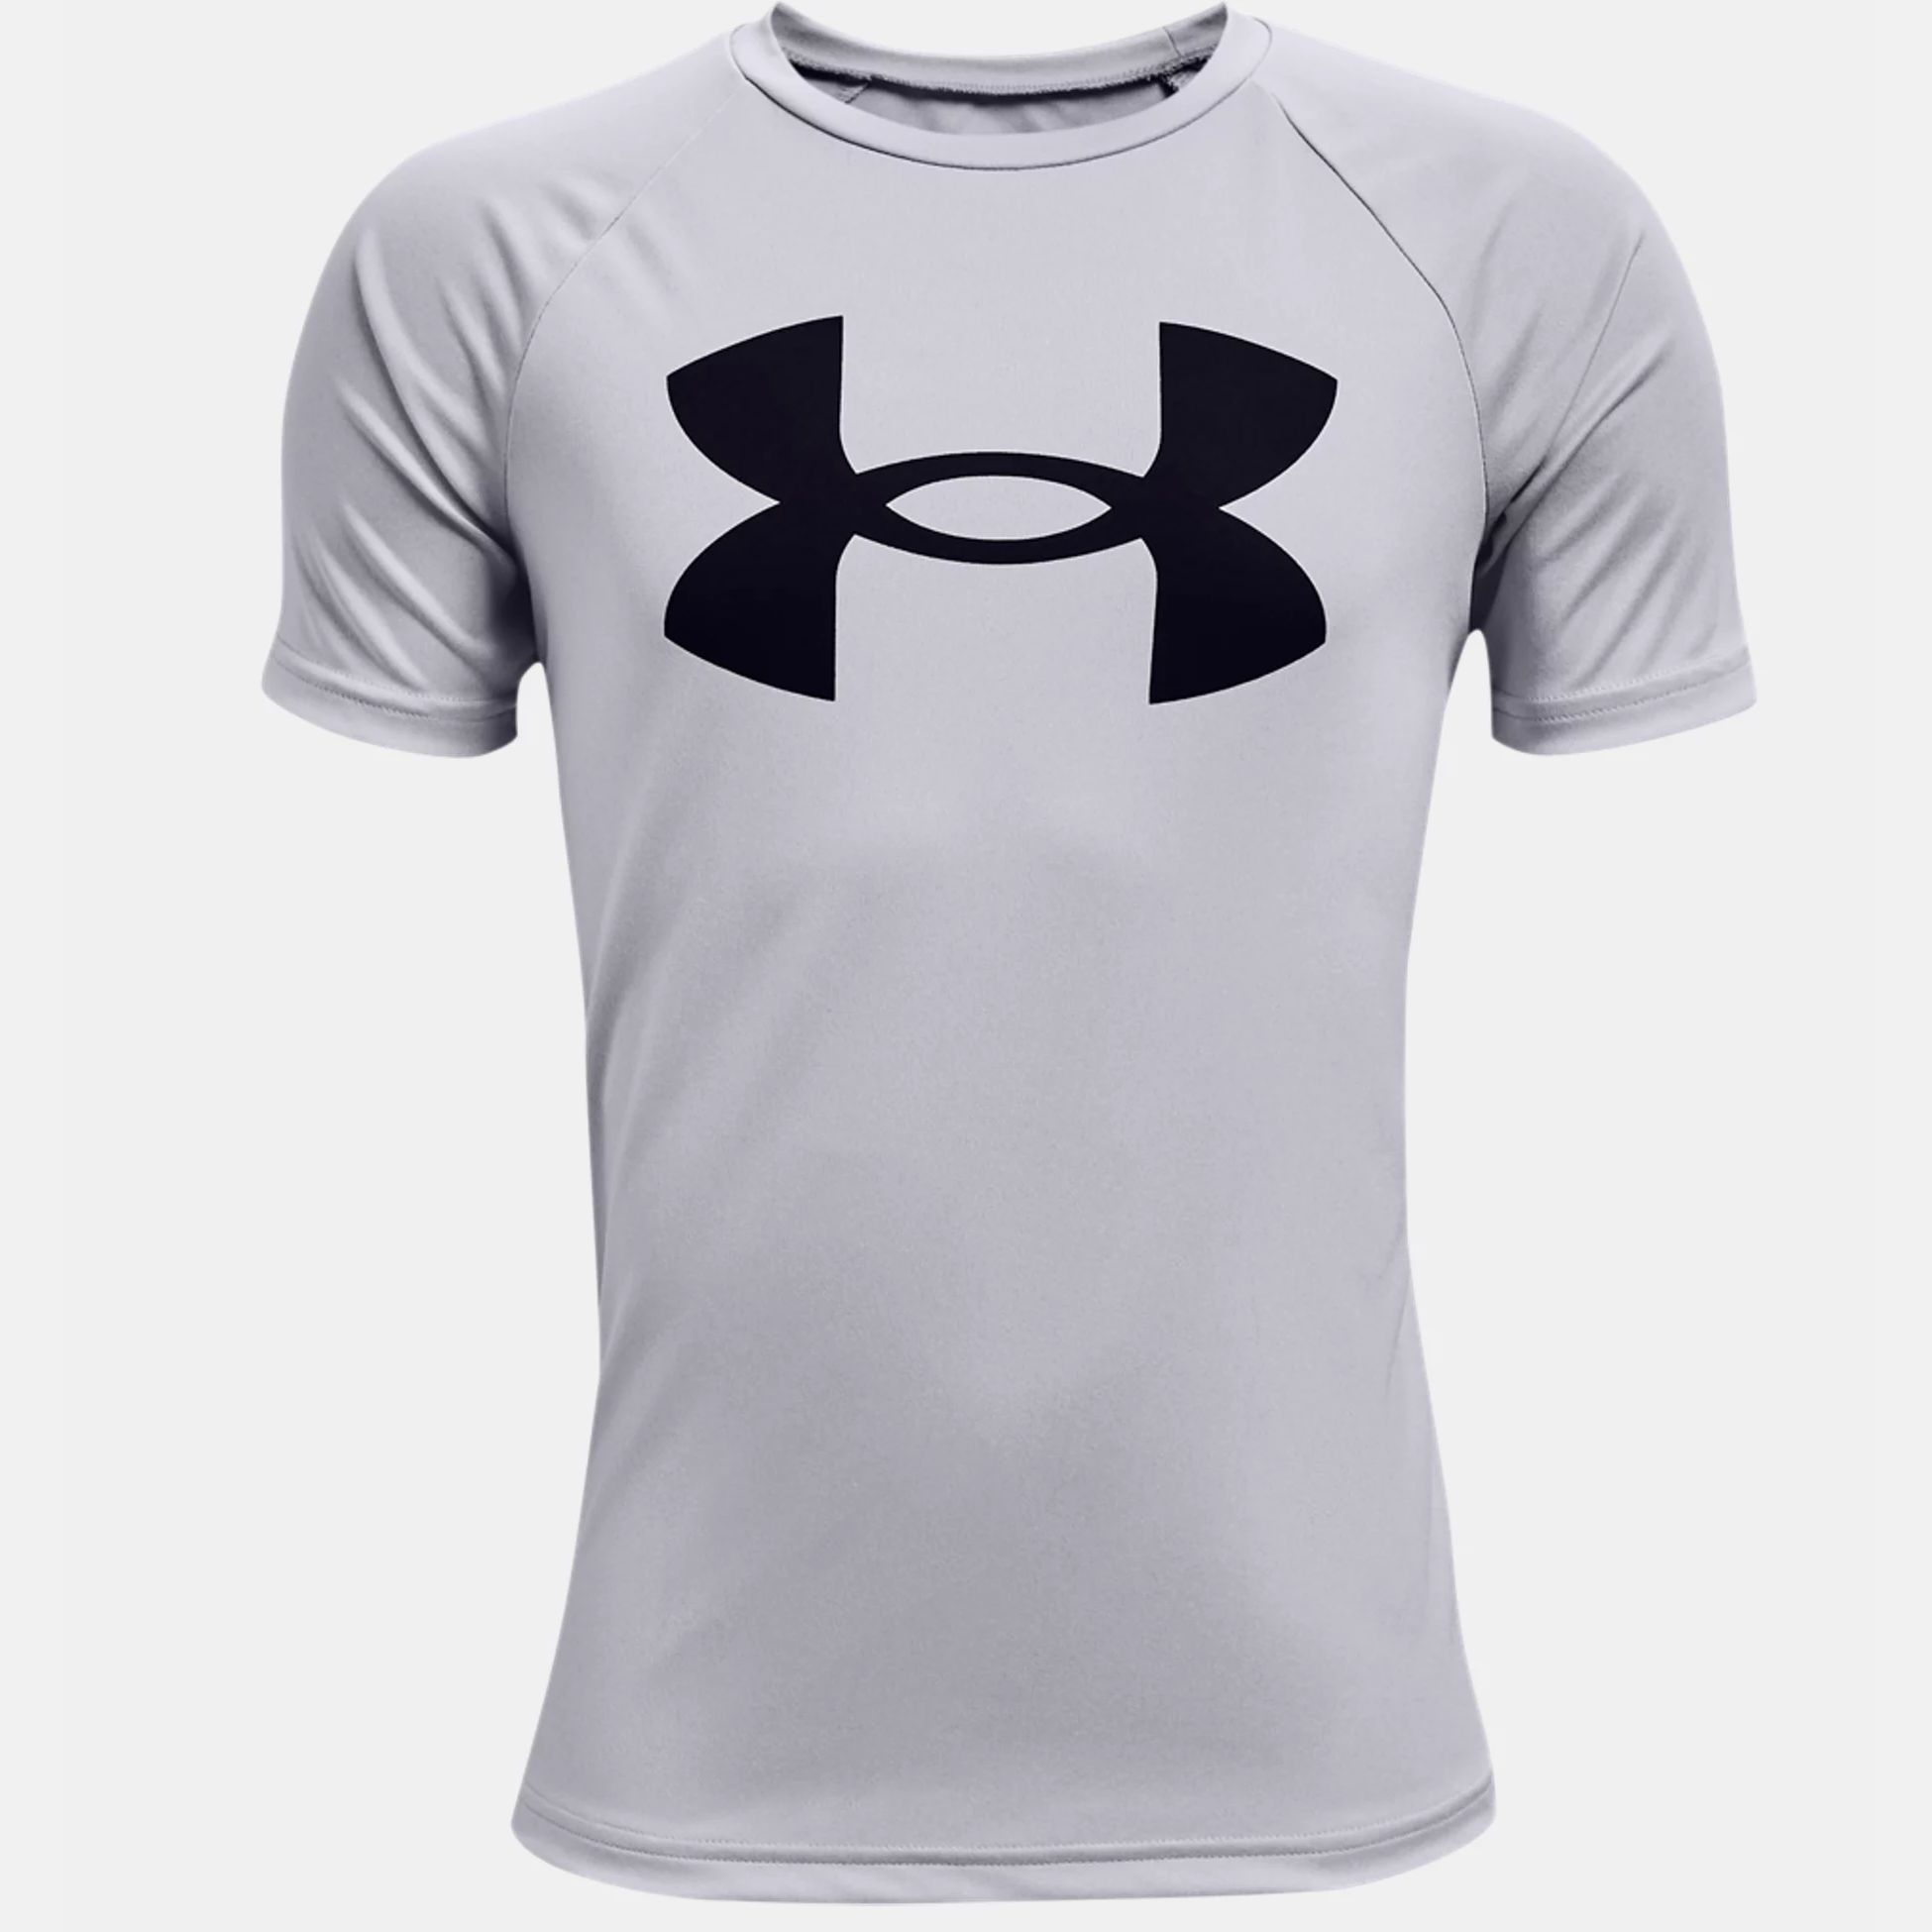 Clothing -  under armour Boys UA Tech Big Logo T-Shirt 3283